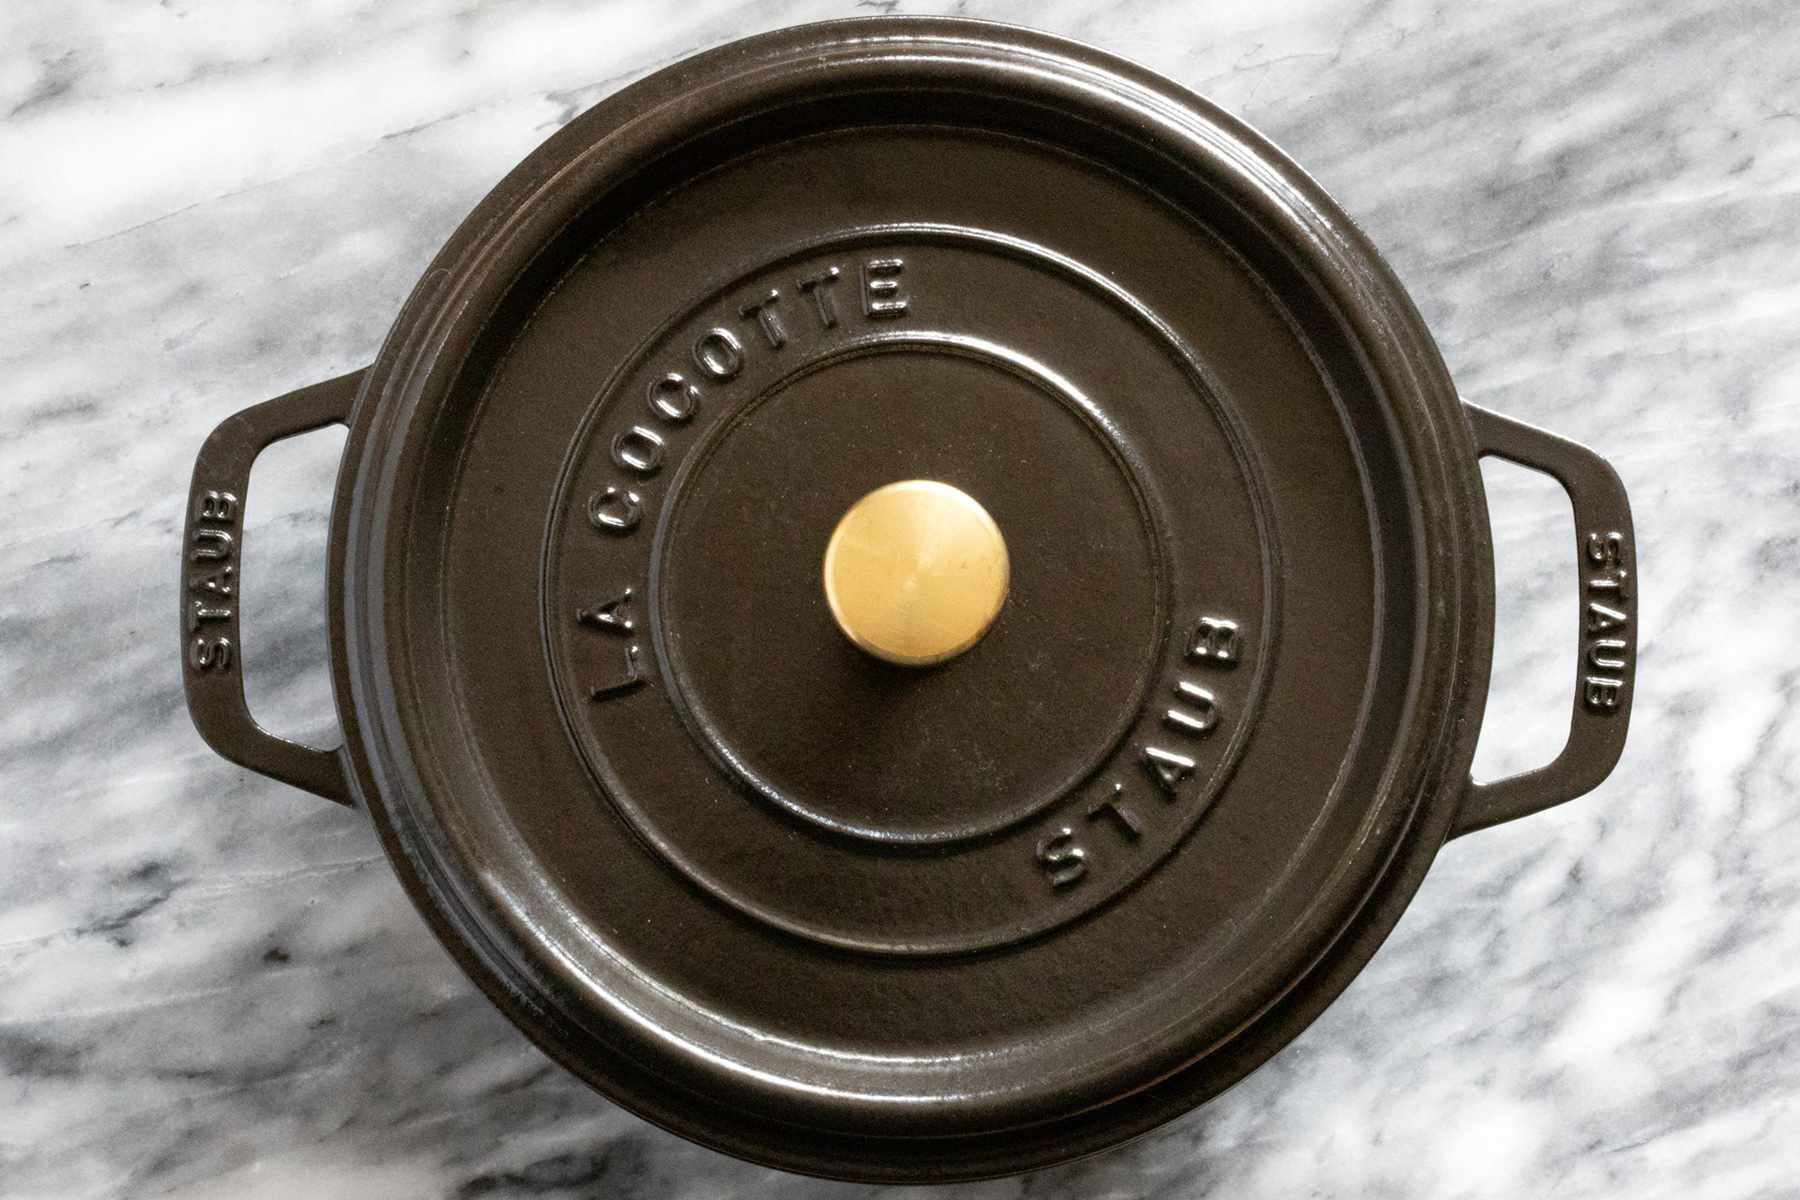 Dutch oven with metal knob